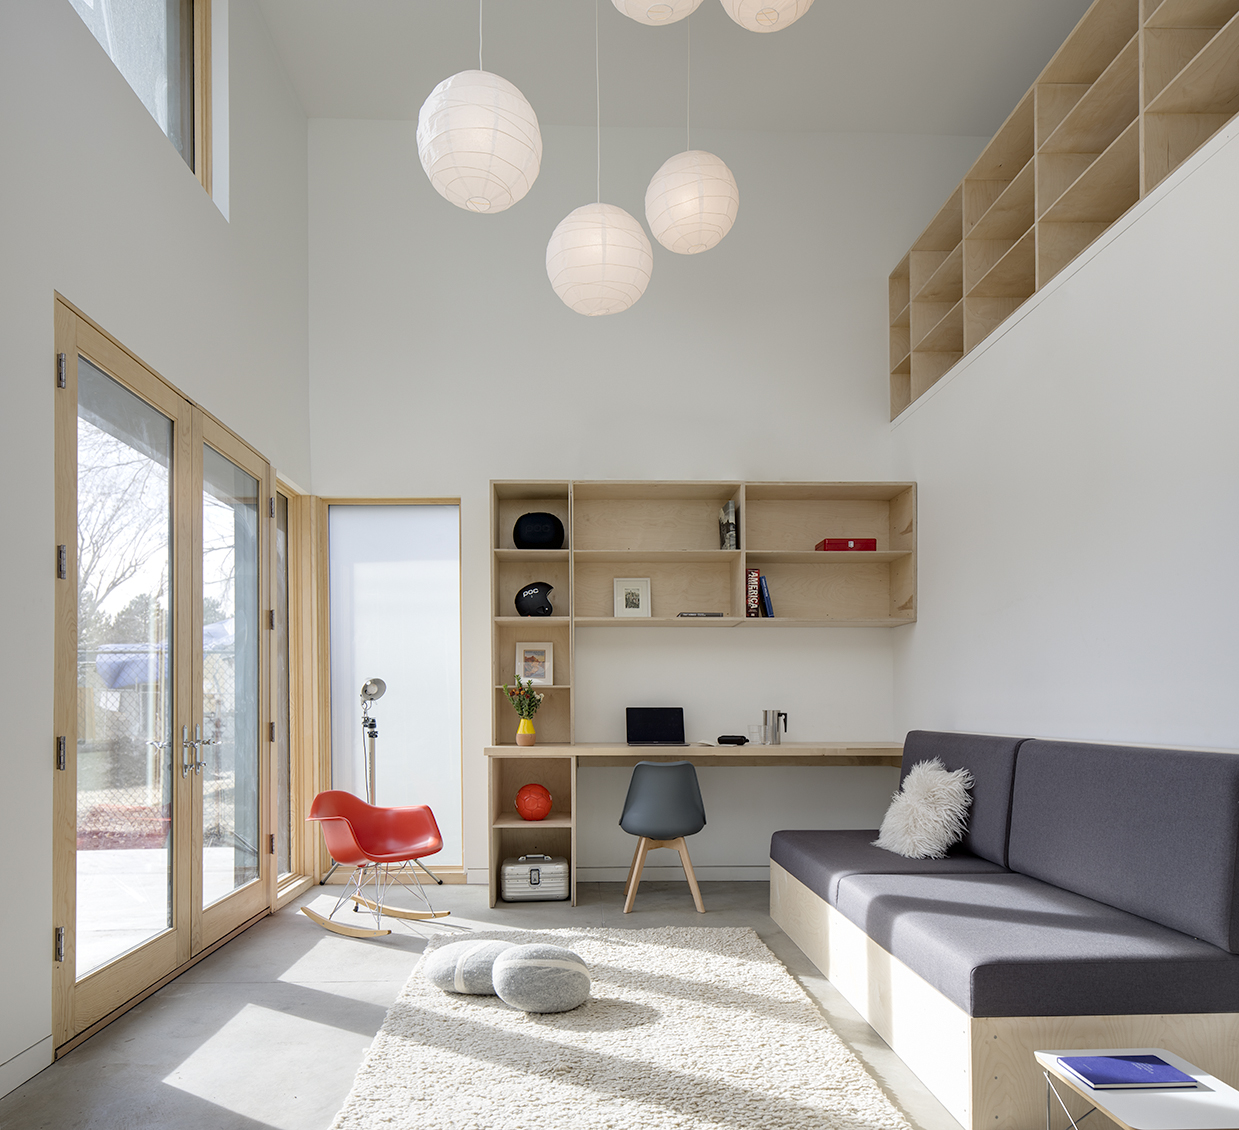 Kunga Studio for Atelier Jorg RugemerArchitectural Photography by: Paul Richer / RICHER IMAGES